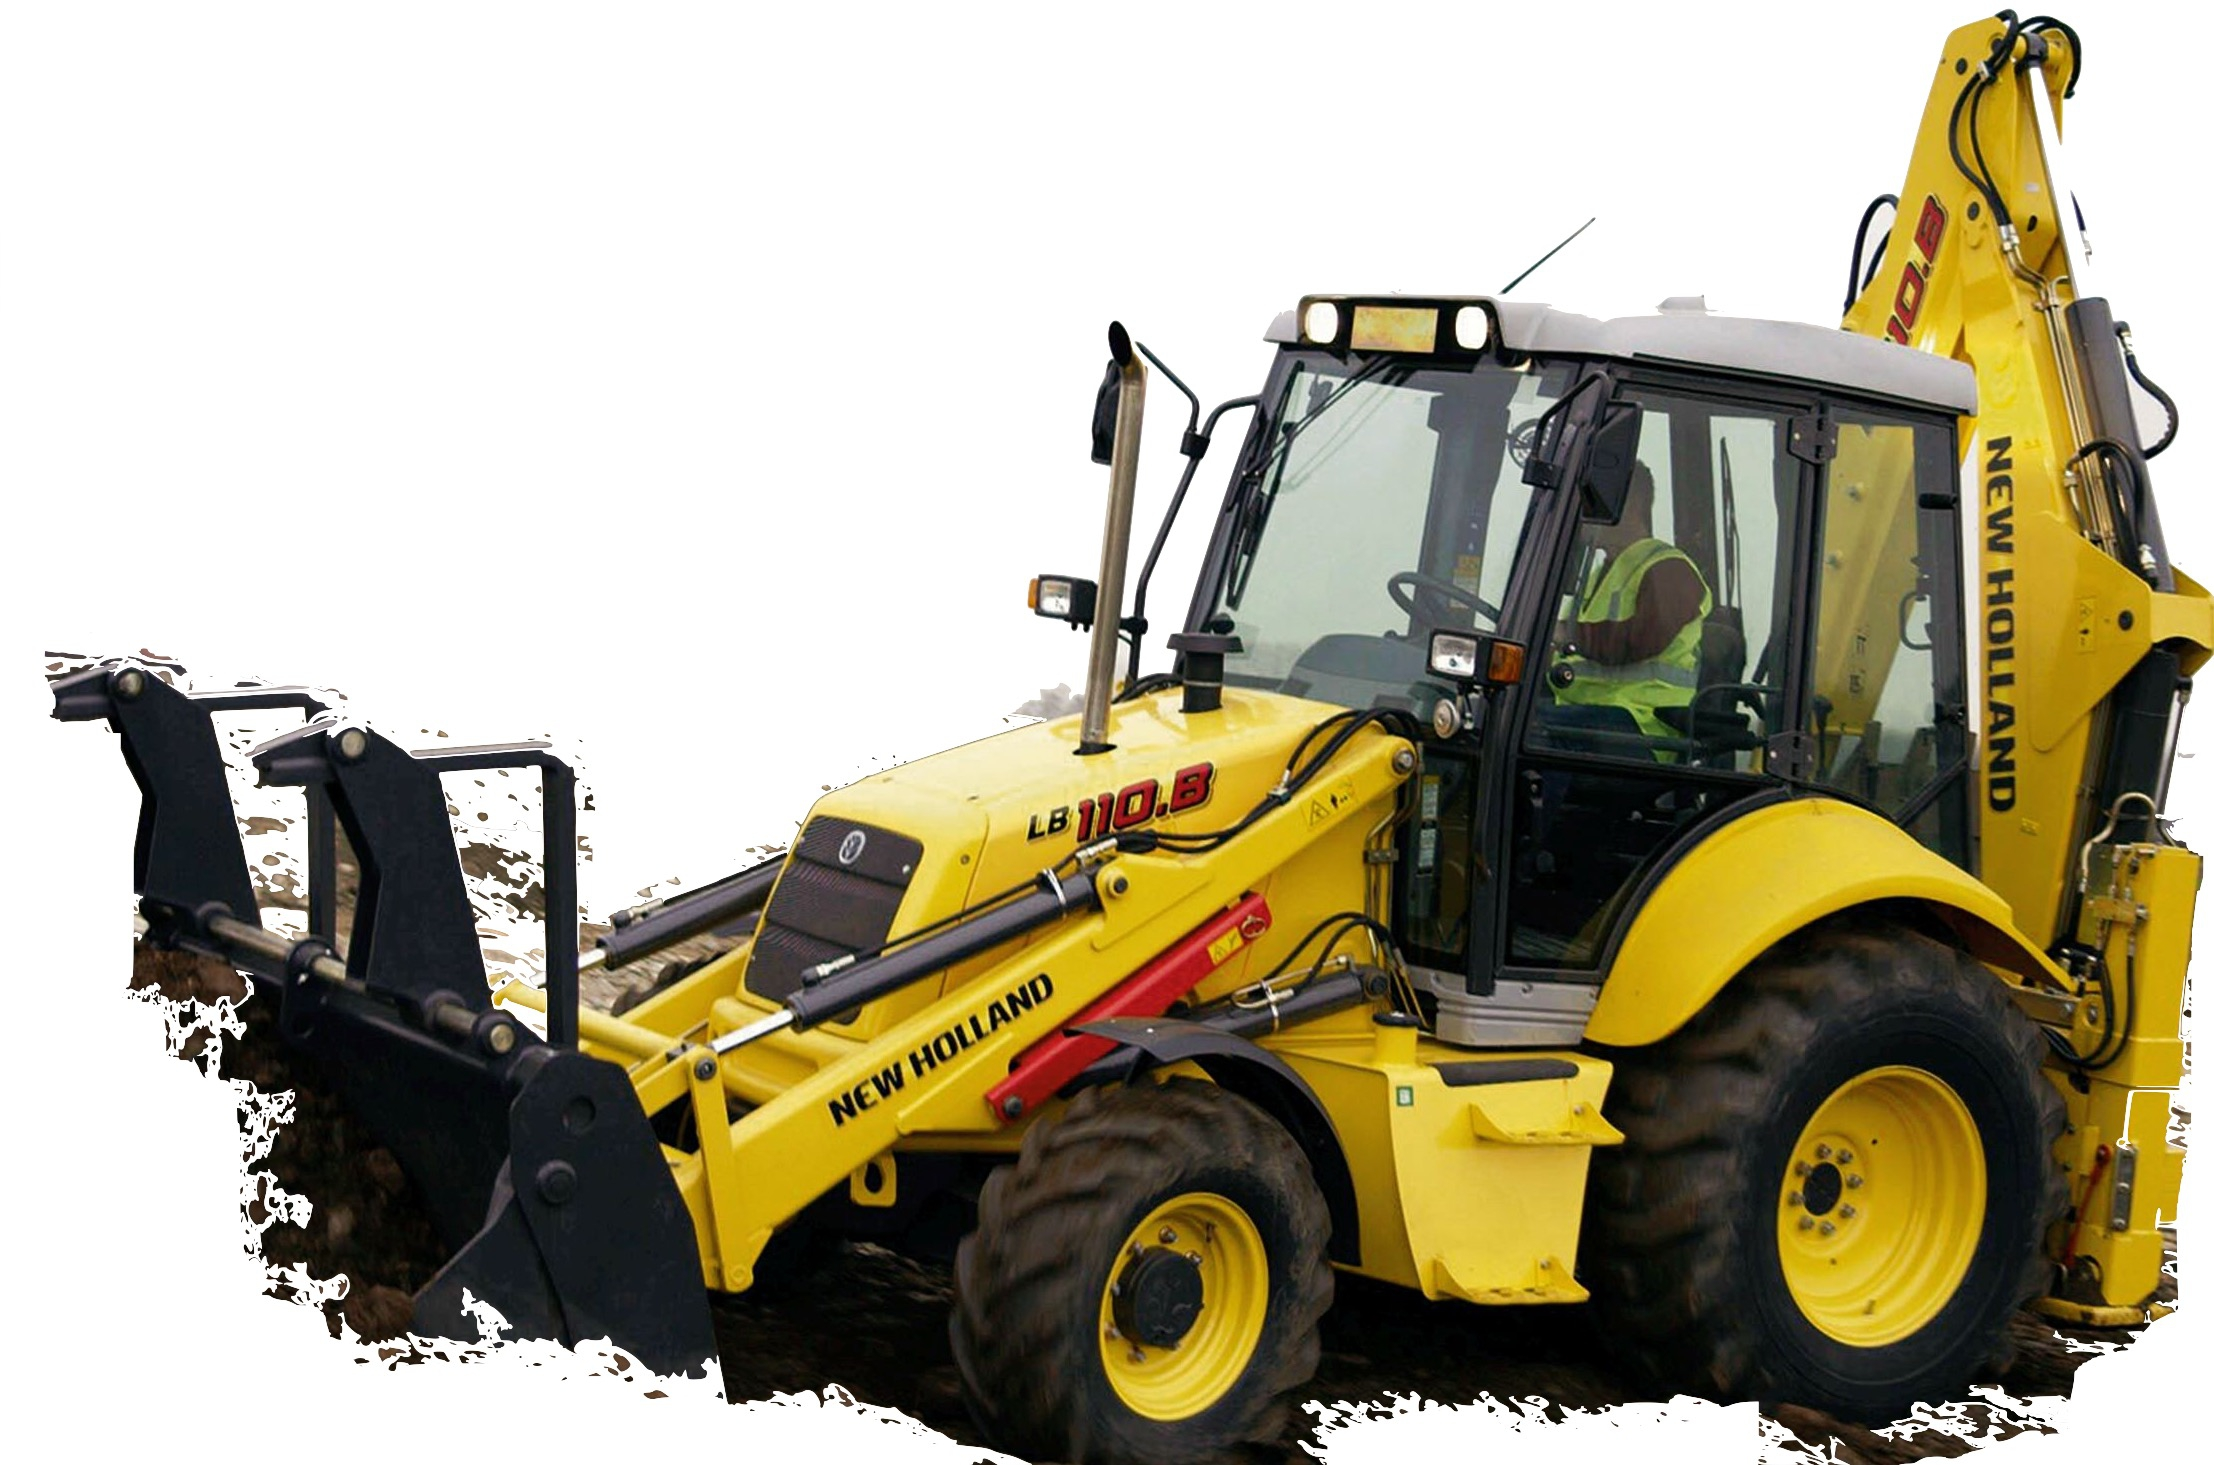 New Holland Lb115 B Wiring Diagram - Wiring Diagram Liry on